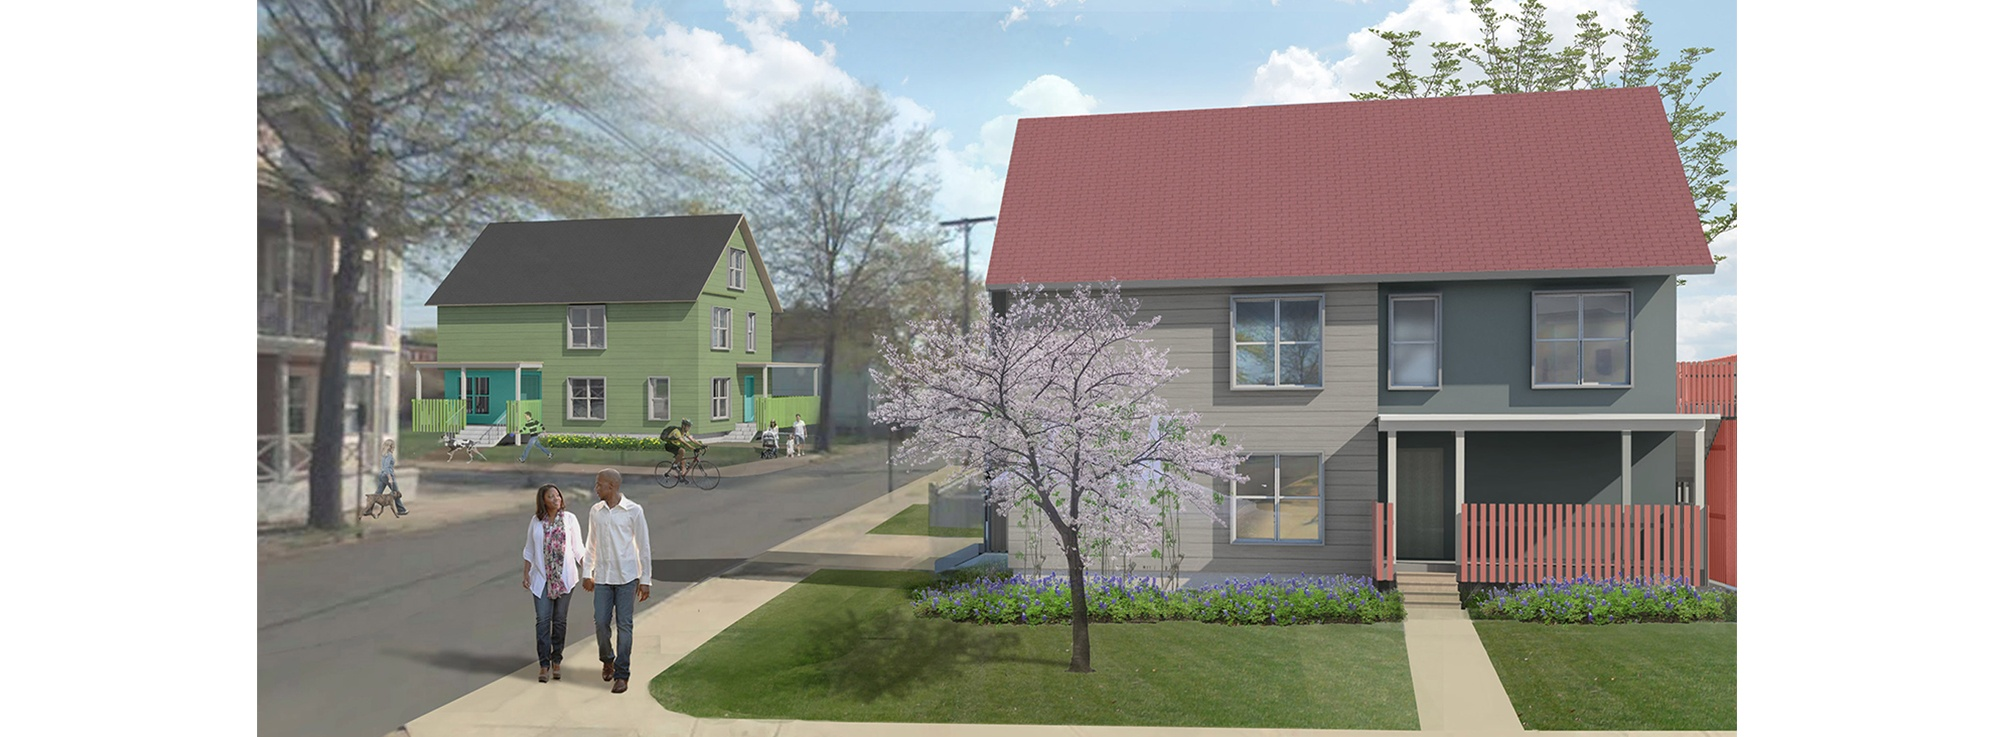 Prototype For Two Family Homes | Modern Urban Infill In A Historical  Neighborhood